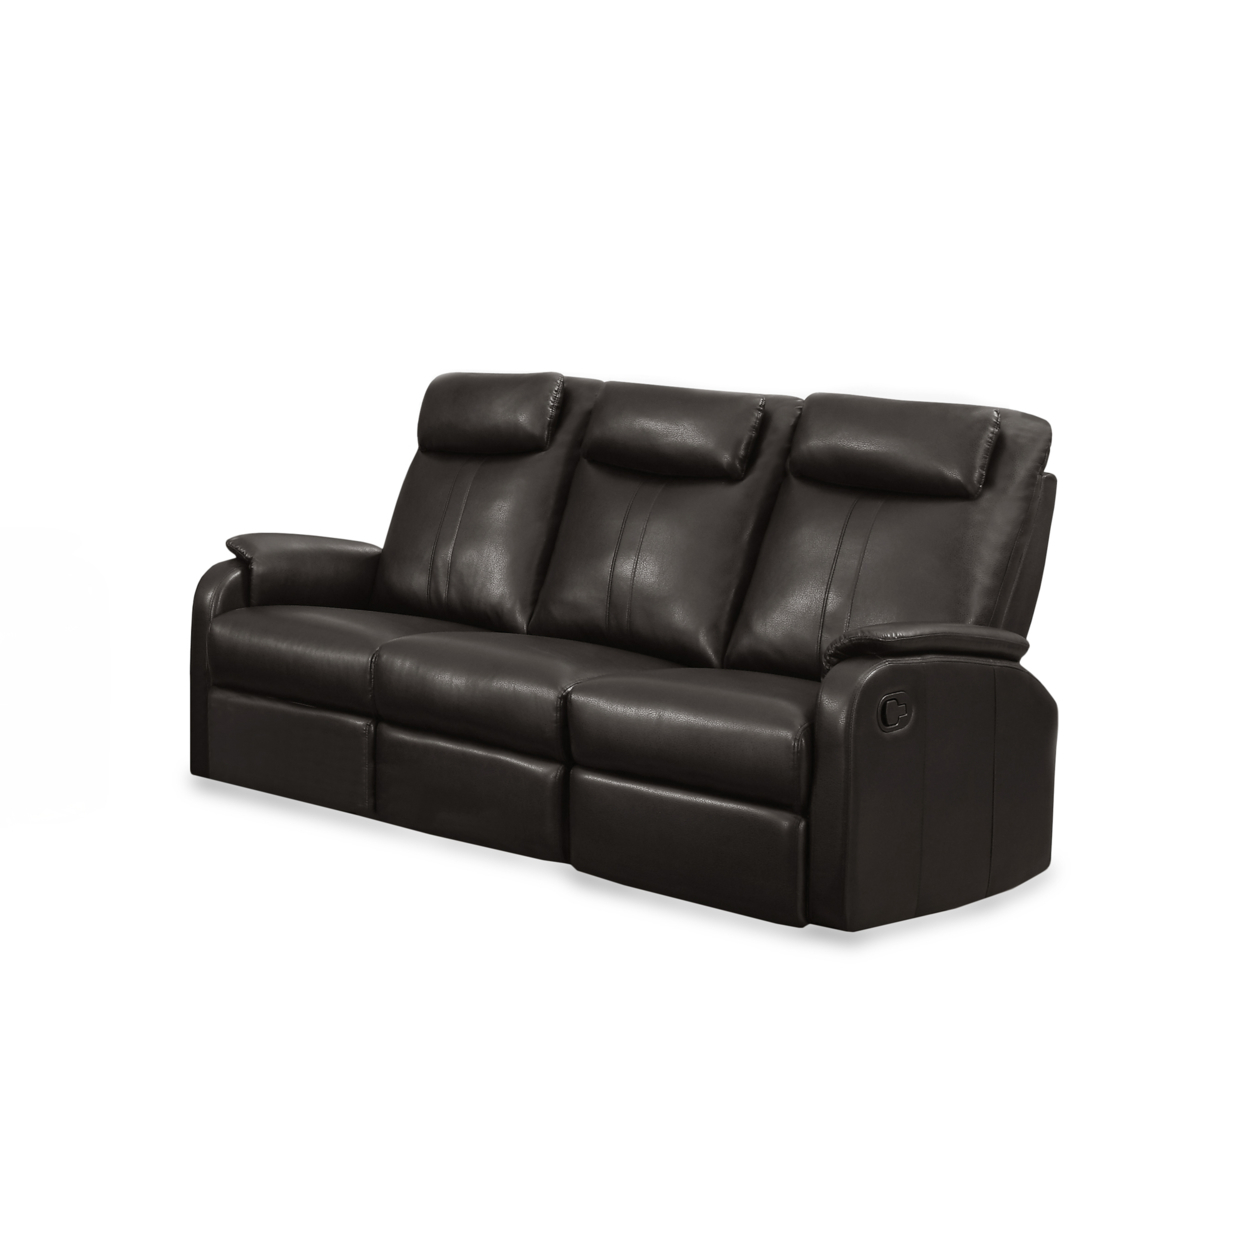 Reclining - Sofa Brown Bonded Leather, 81Br-3 5a5461f42a00e41a3f15bd34